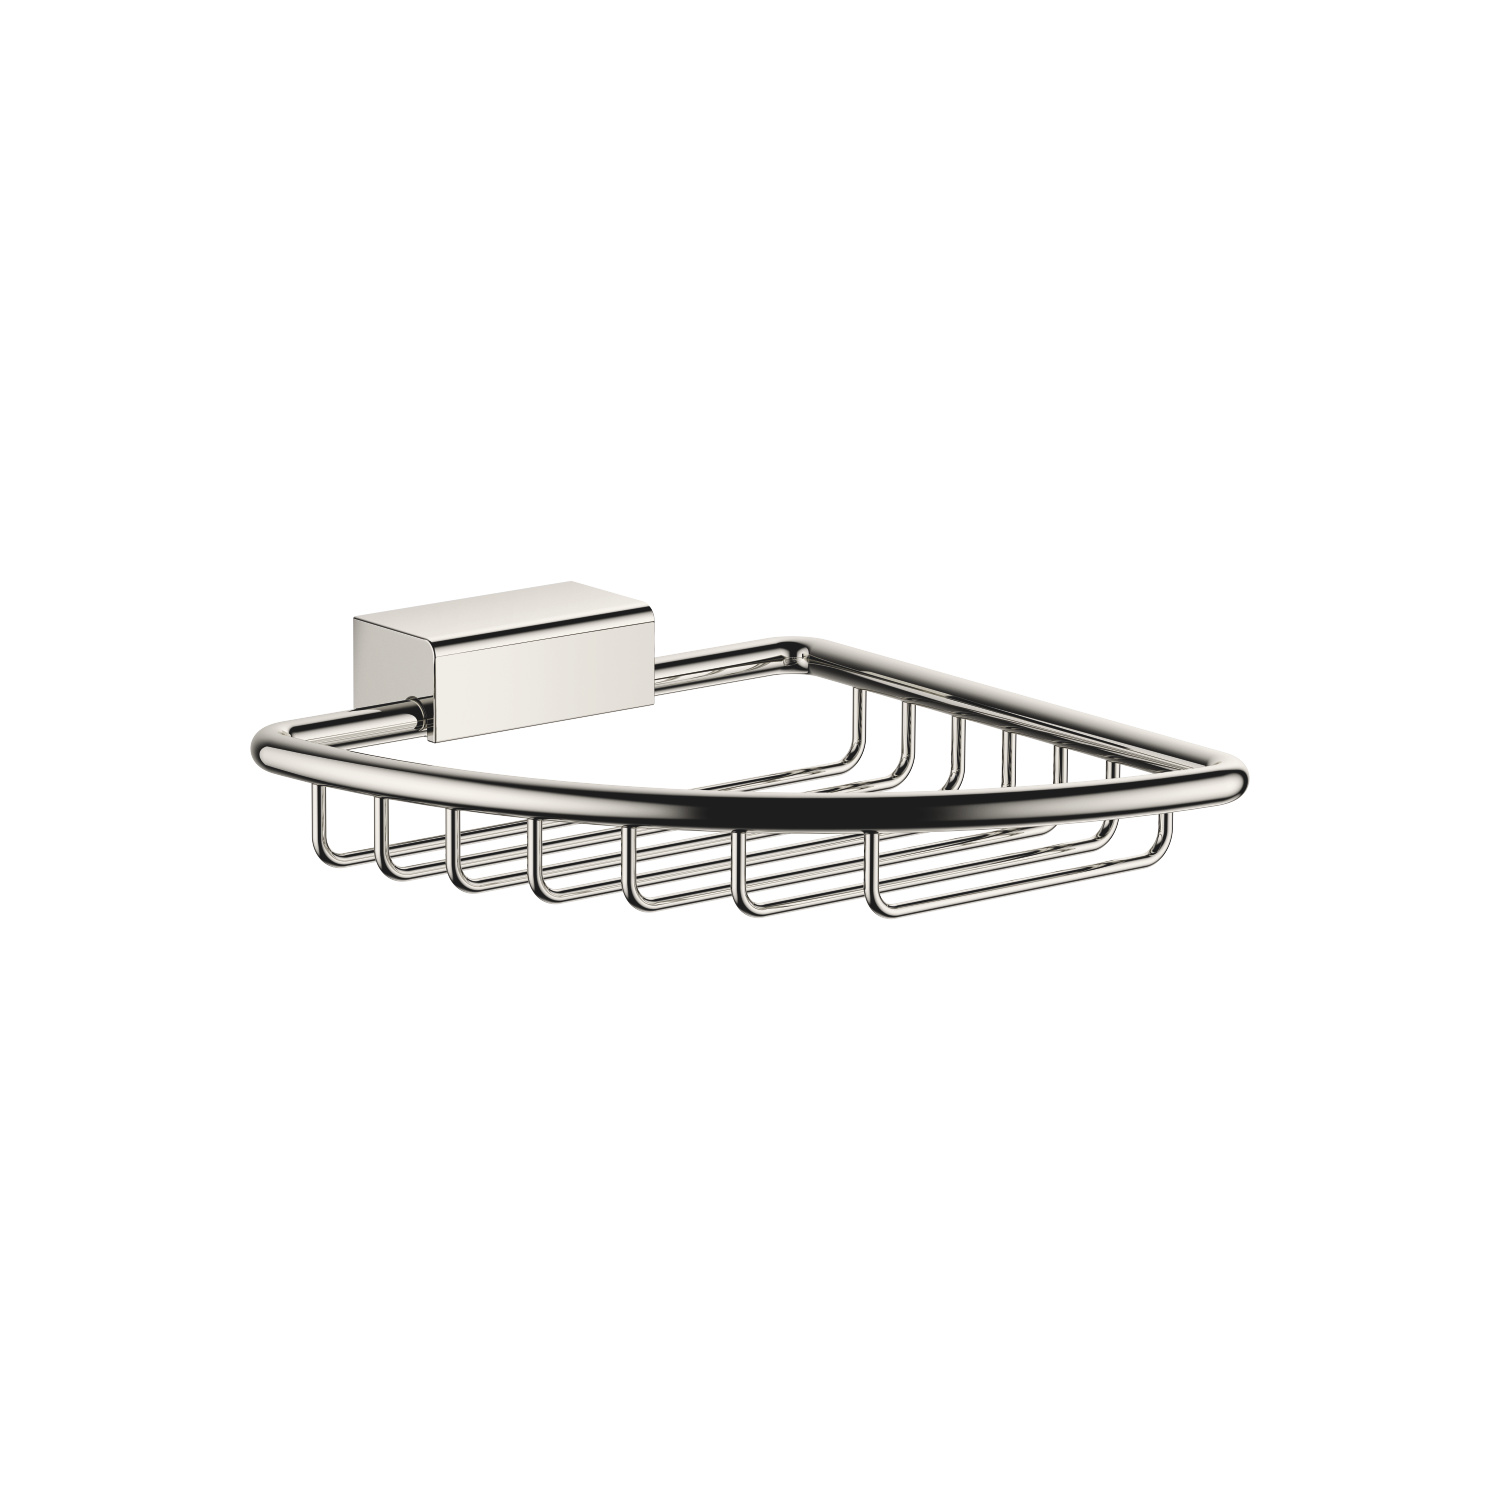 Soap basket for corner installation - platinum